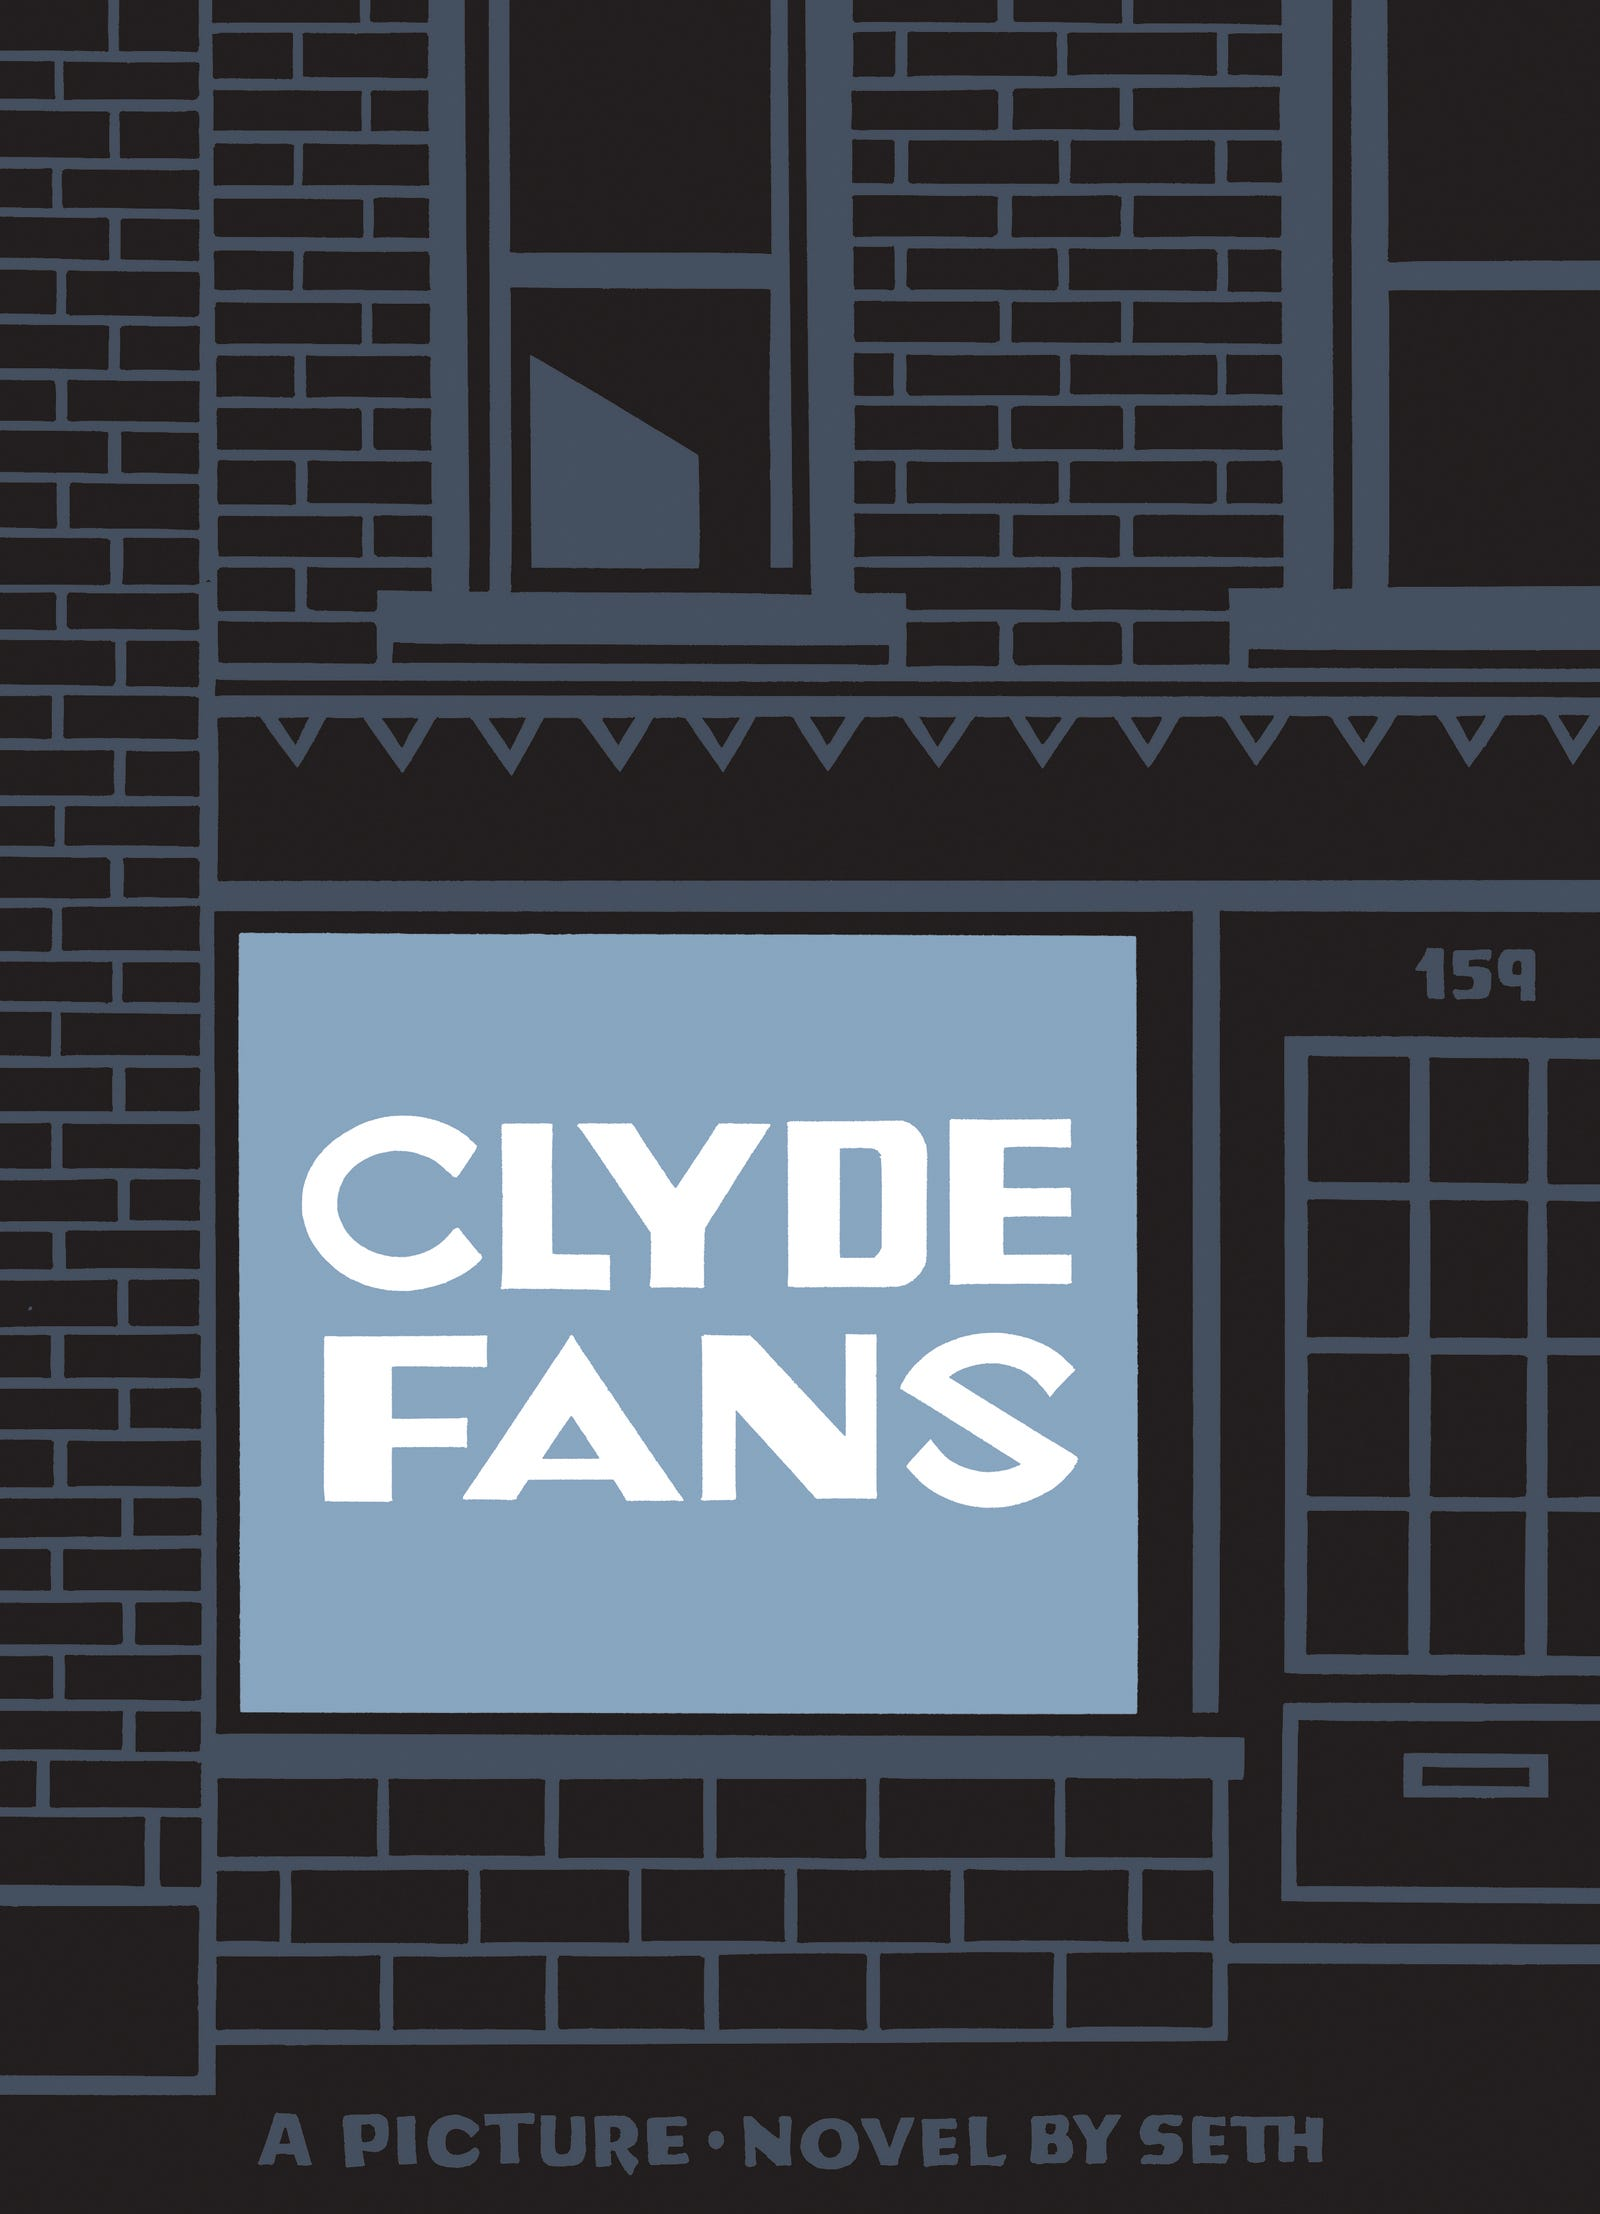 All Clyde Fans images: Drawn & Quarterly